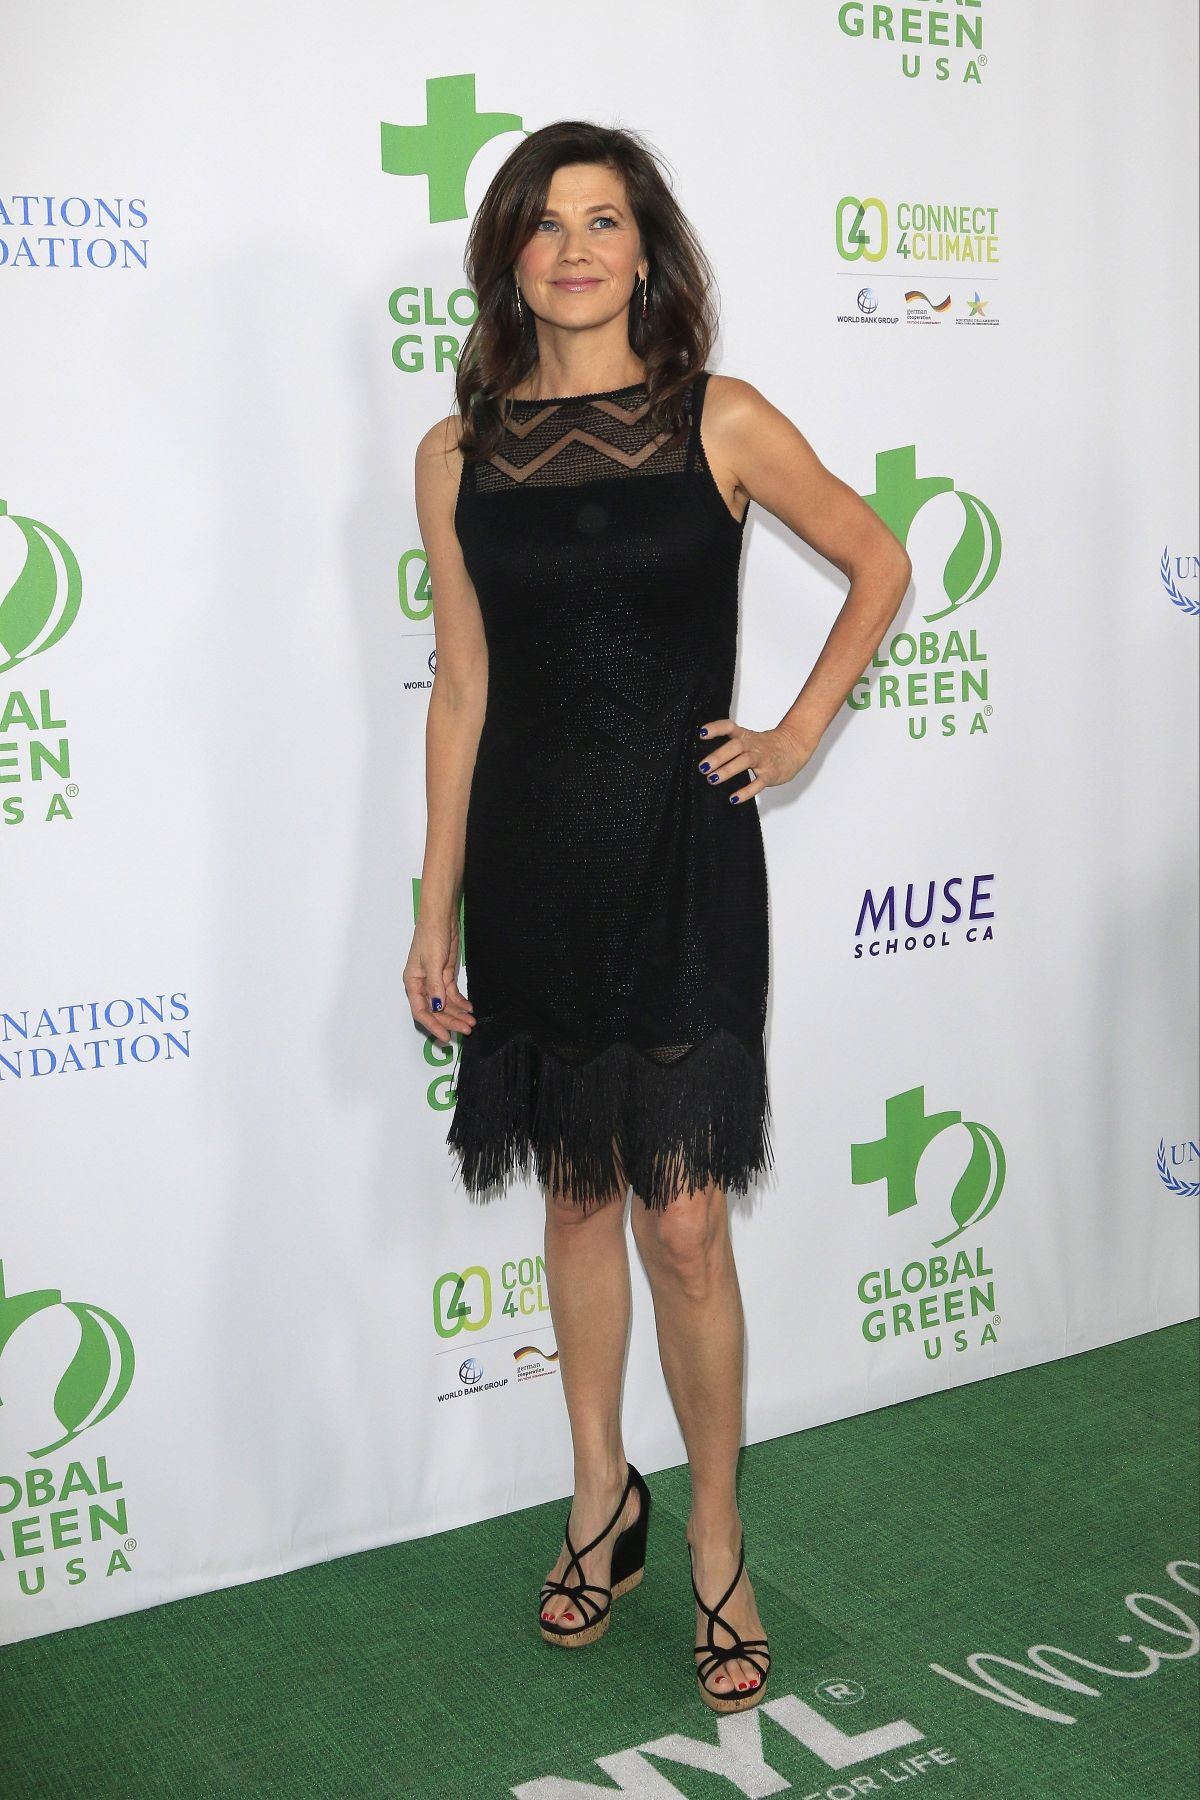 DAPHNE ZUNIGA at Global Green USA's 13th Annual Pre-oscar Party in Beverly Hills 02/24/2016